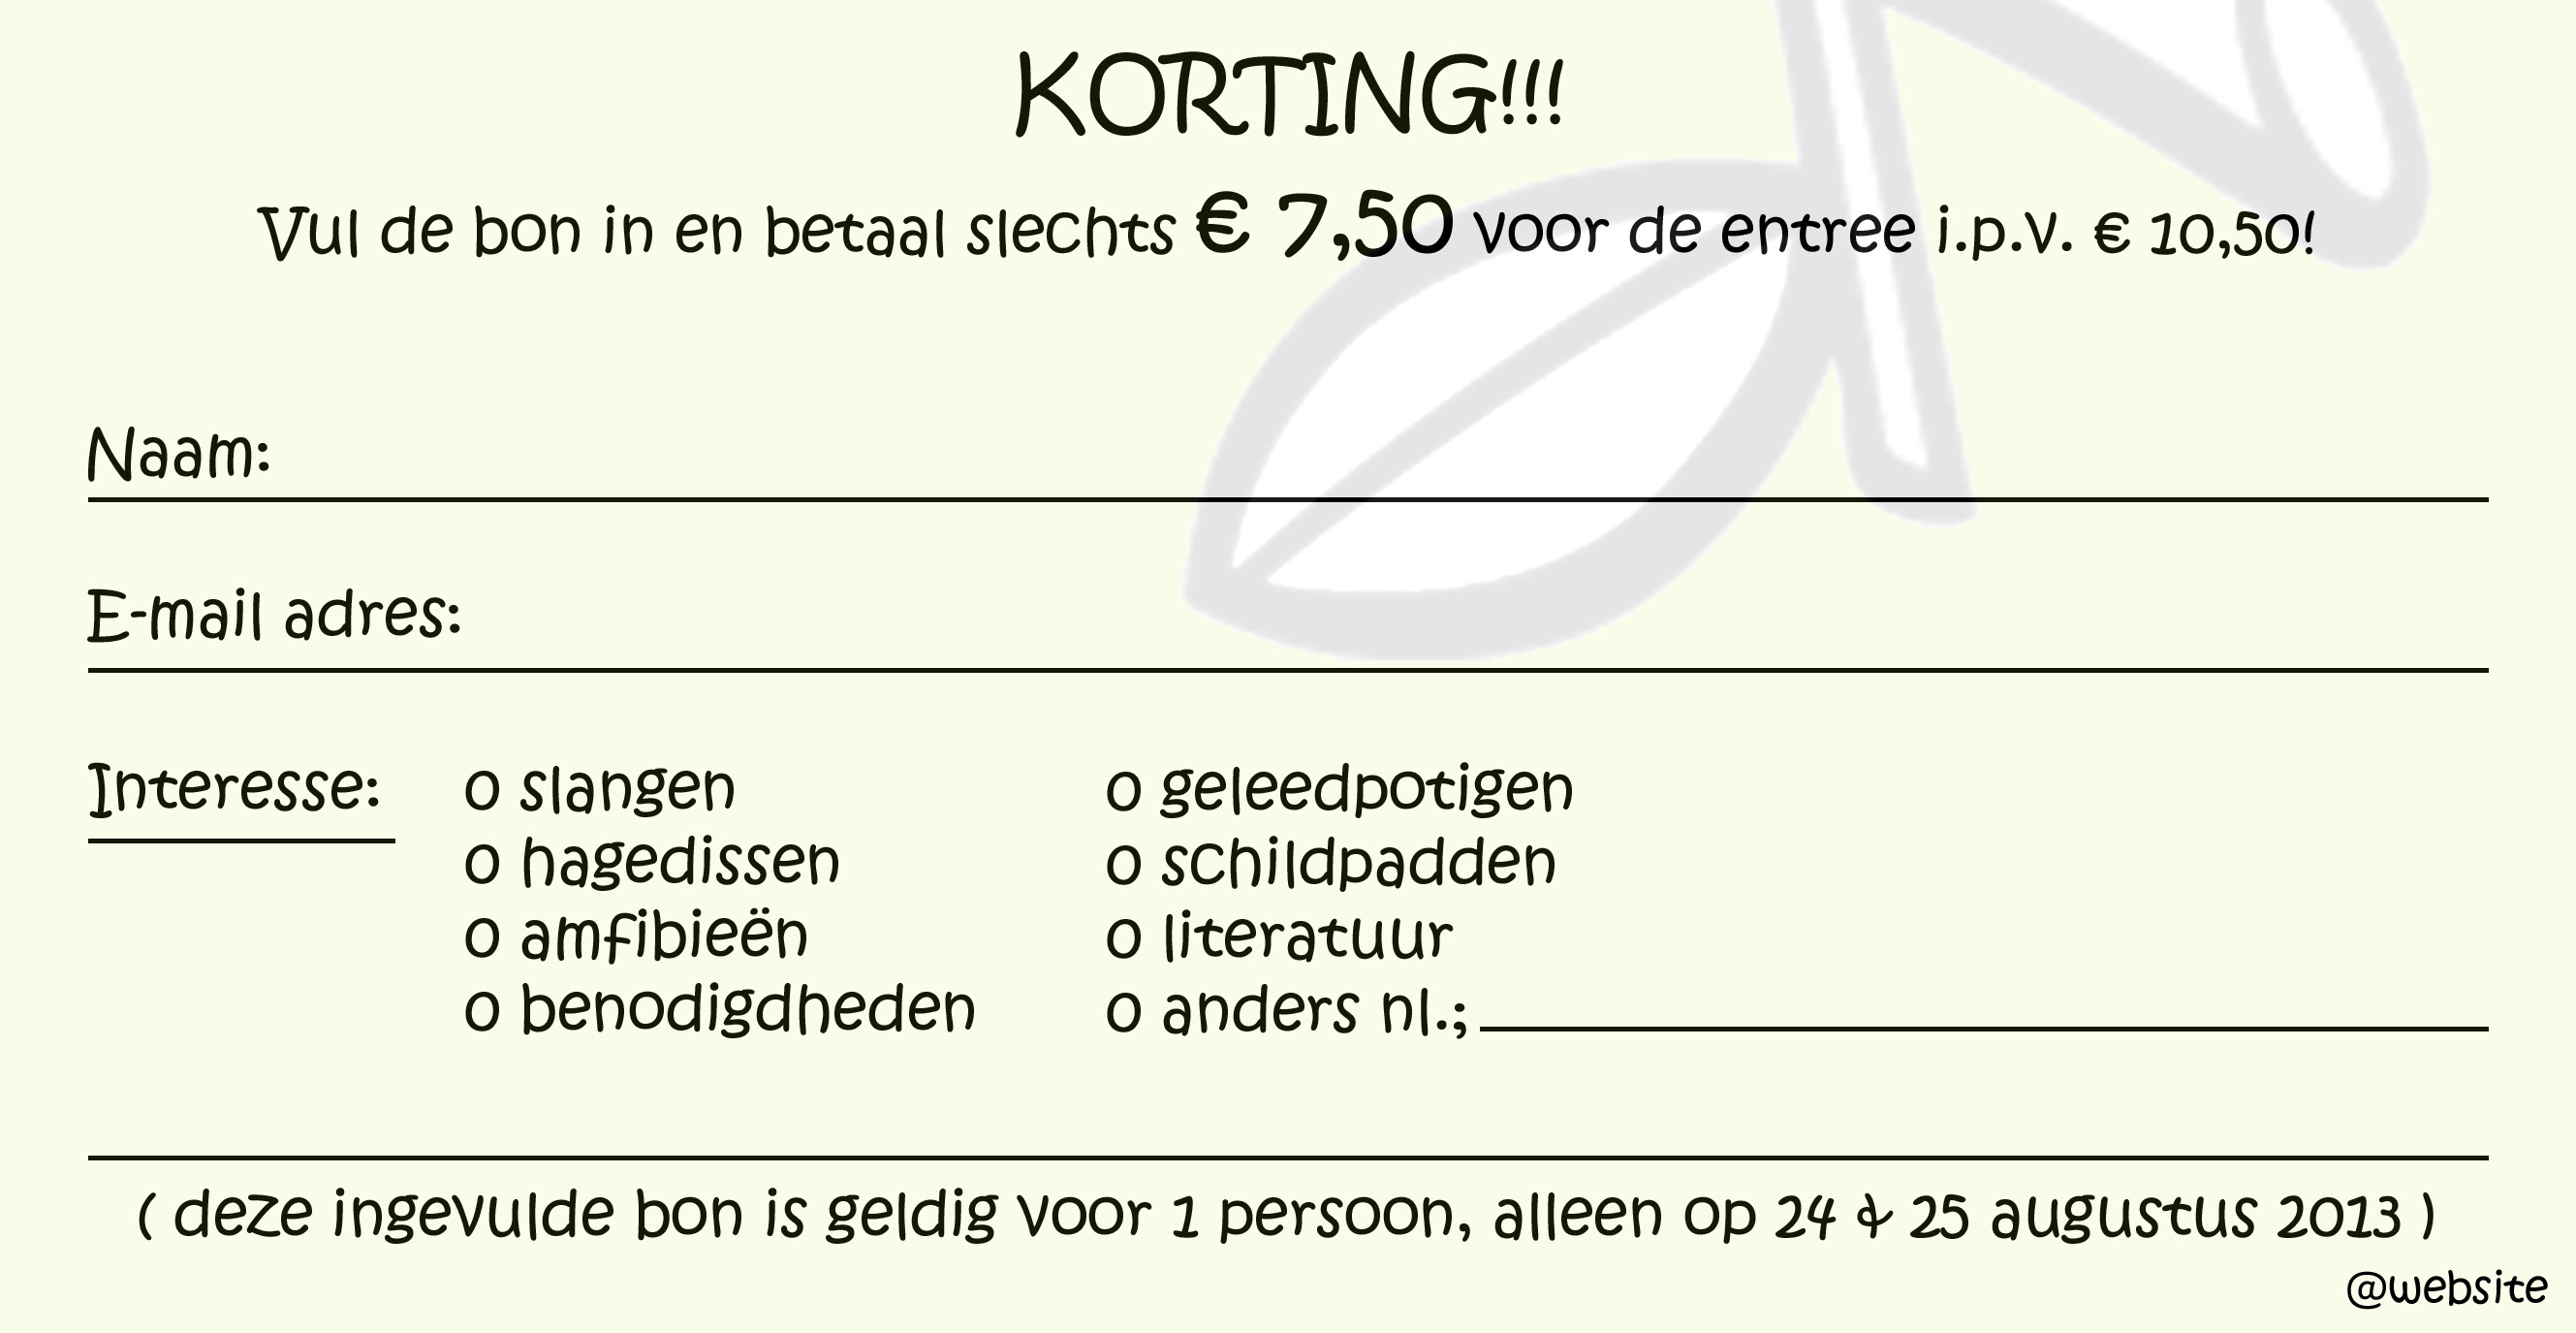 korting website TTD 2013JPG